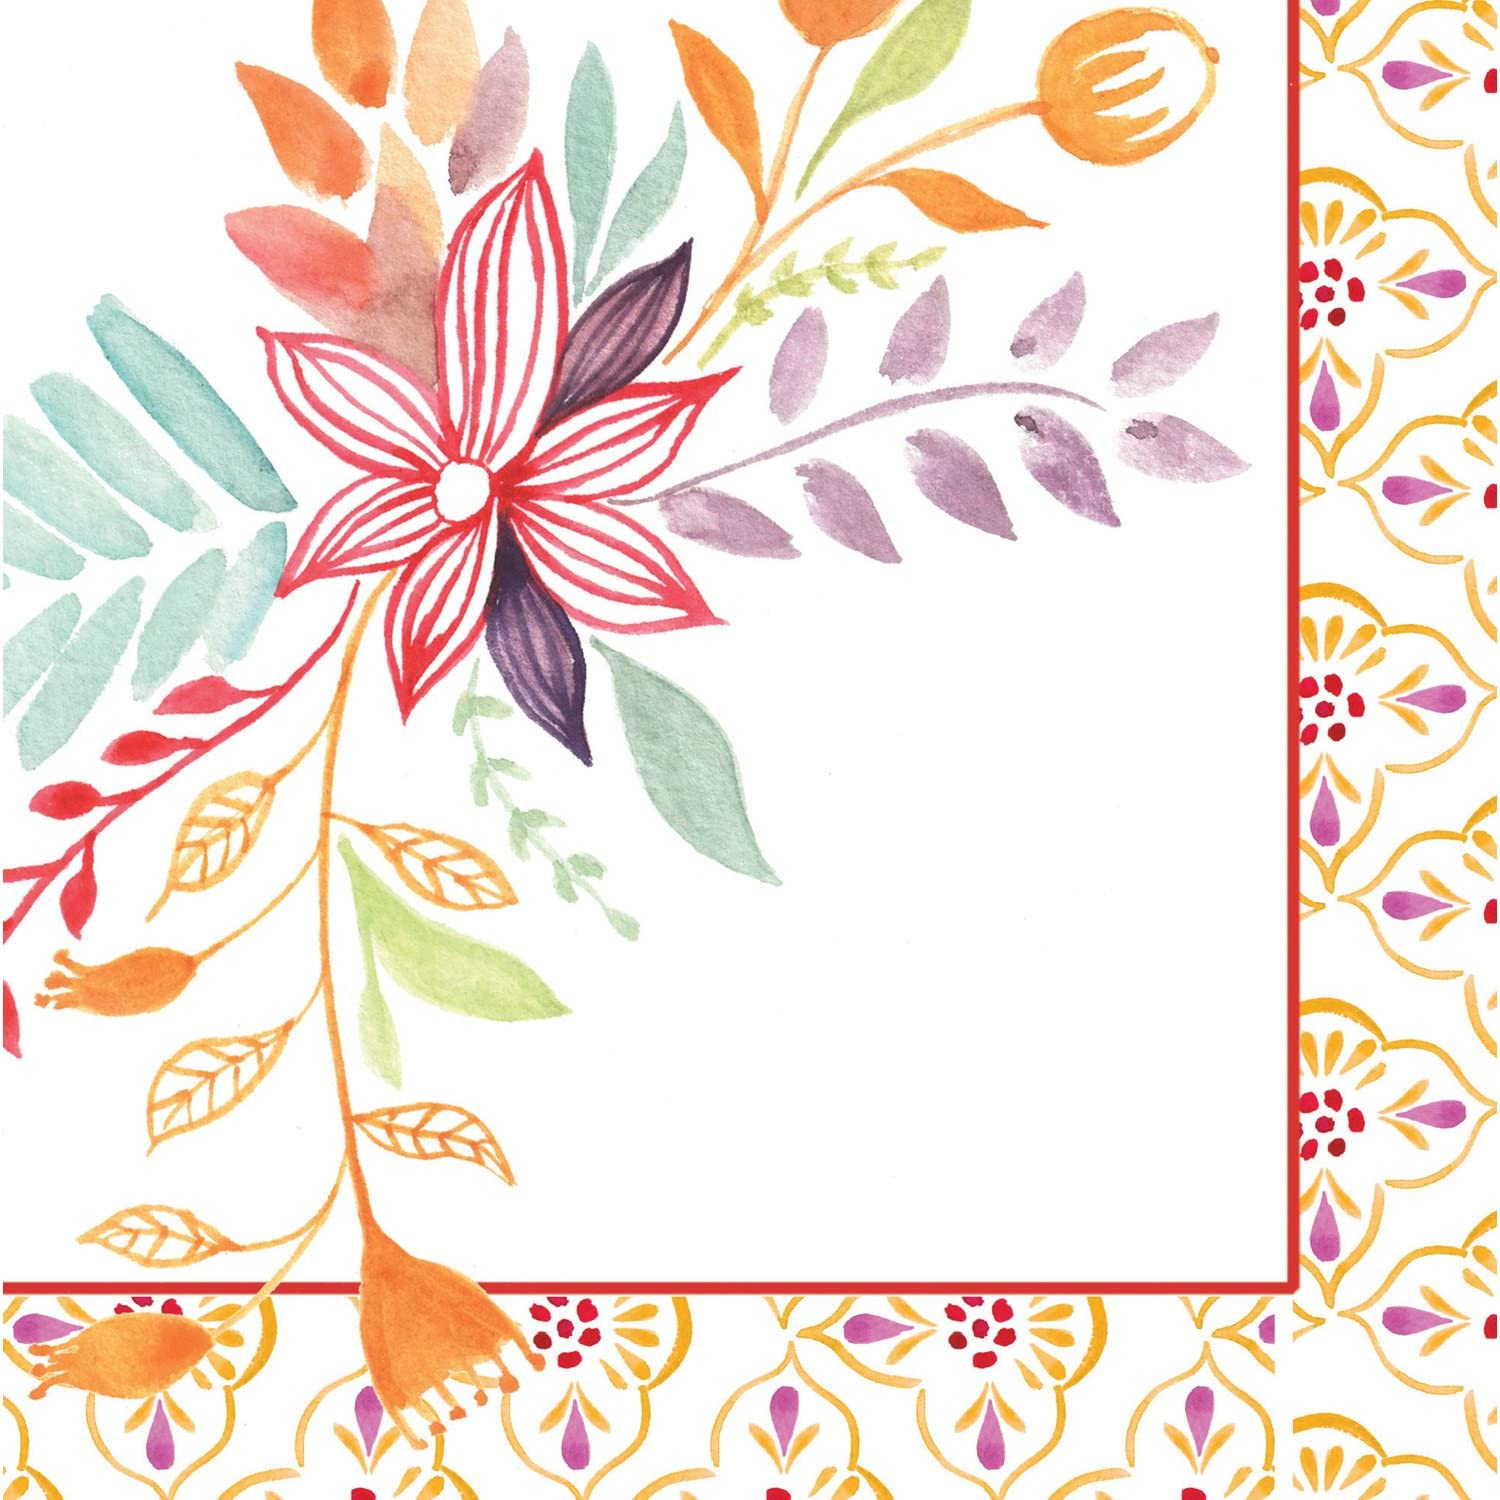 Watercolor Floral Paper Cocktail Napkin, Set of 20-5 x 1 x 5 Inches